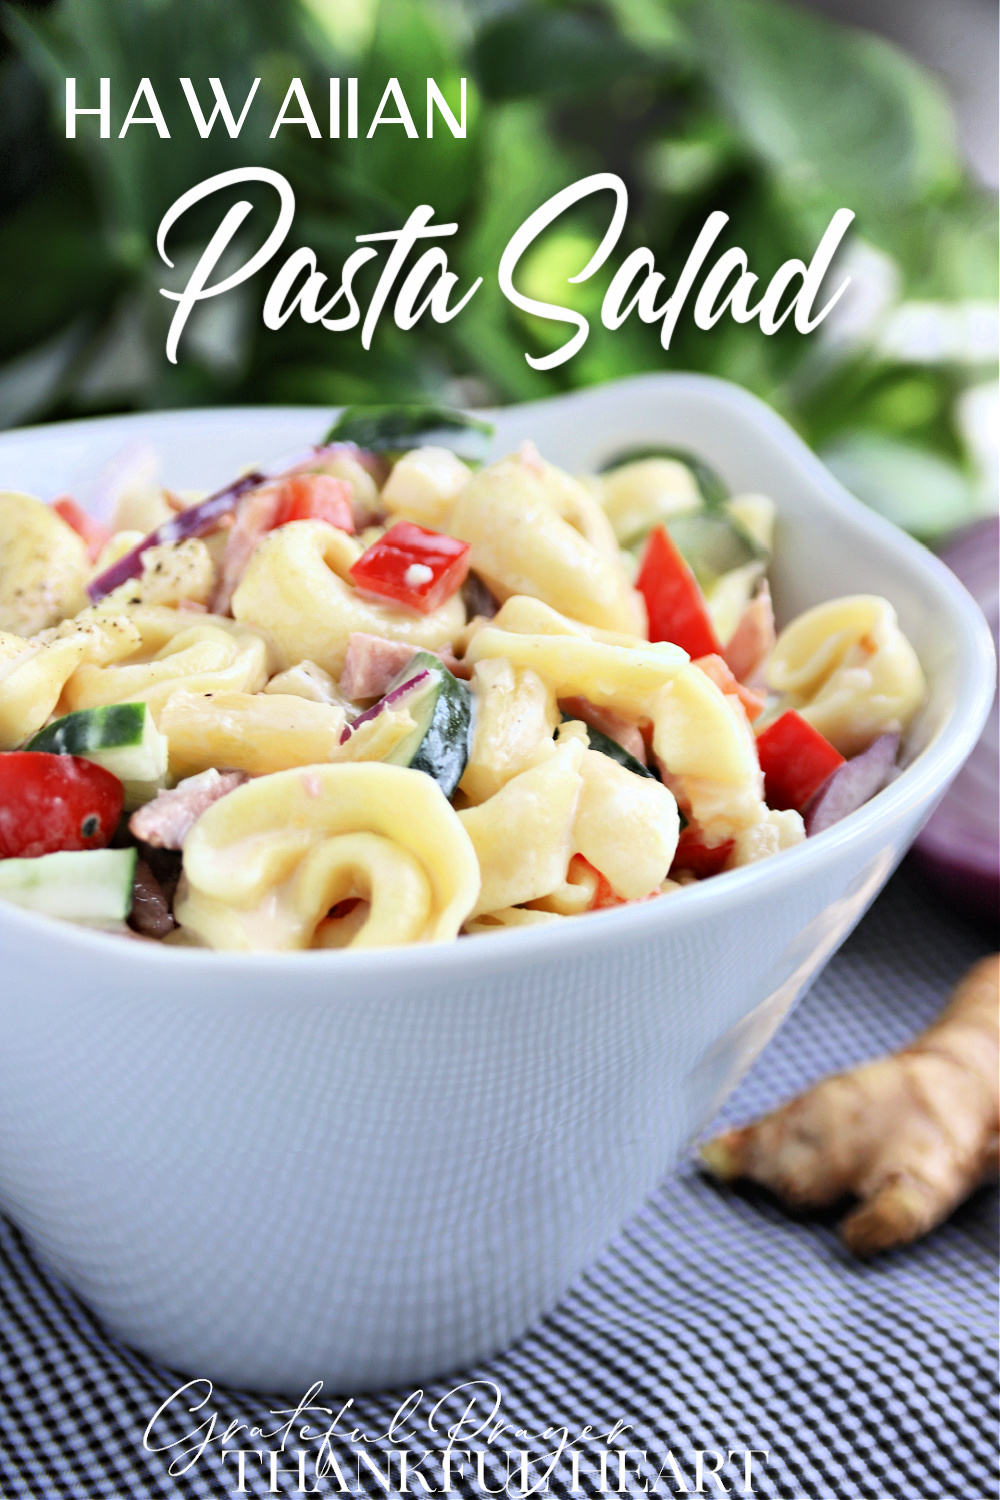 Hawaiian Pasta Salad with brightly colored veggies is a perfect summer salad. It is a hearty one too, with cheese tortellini, diced ham, bell peppers, cherry tomatoes and pineapple in a creamy dressing.